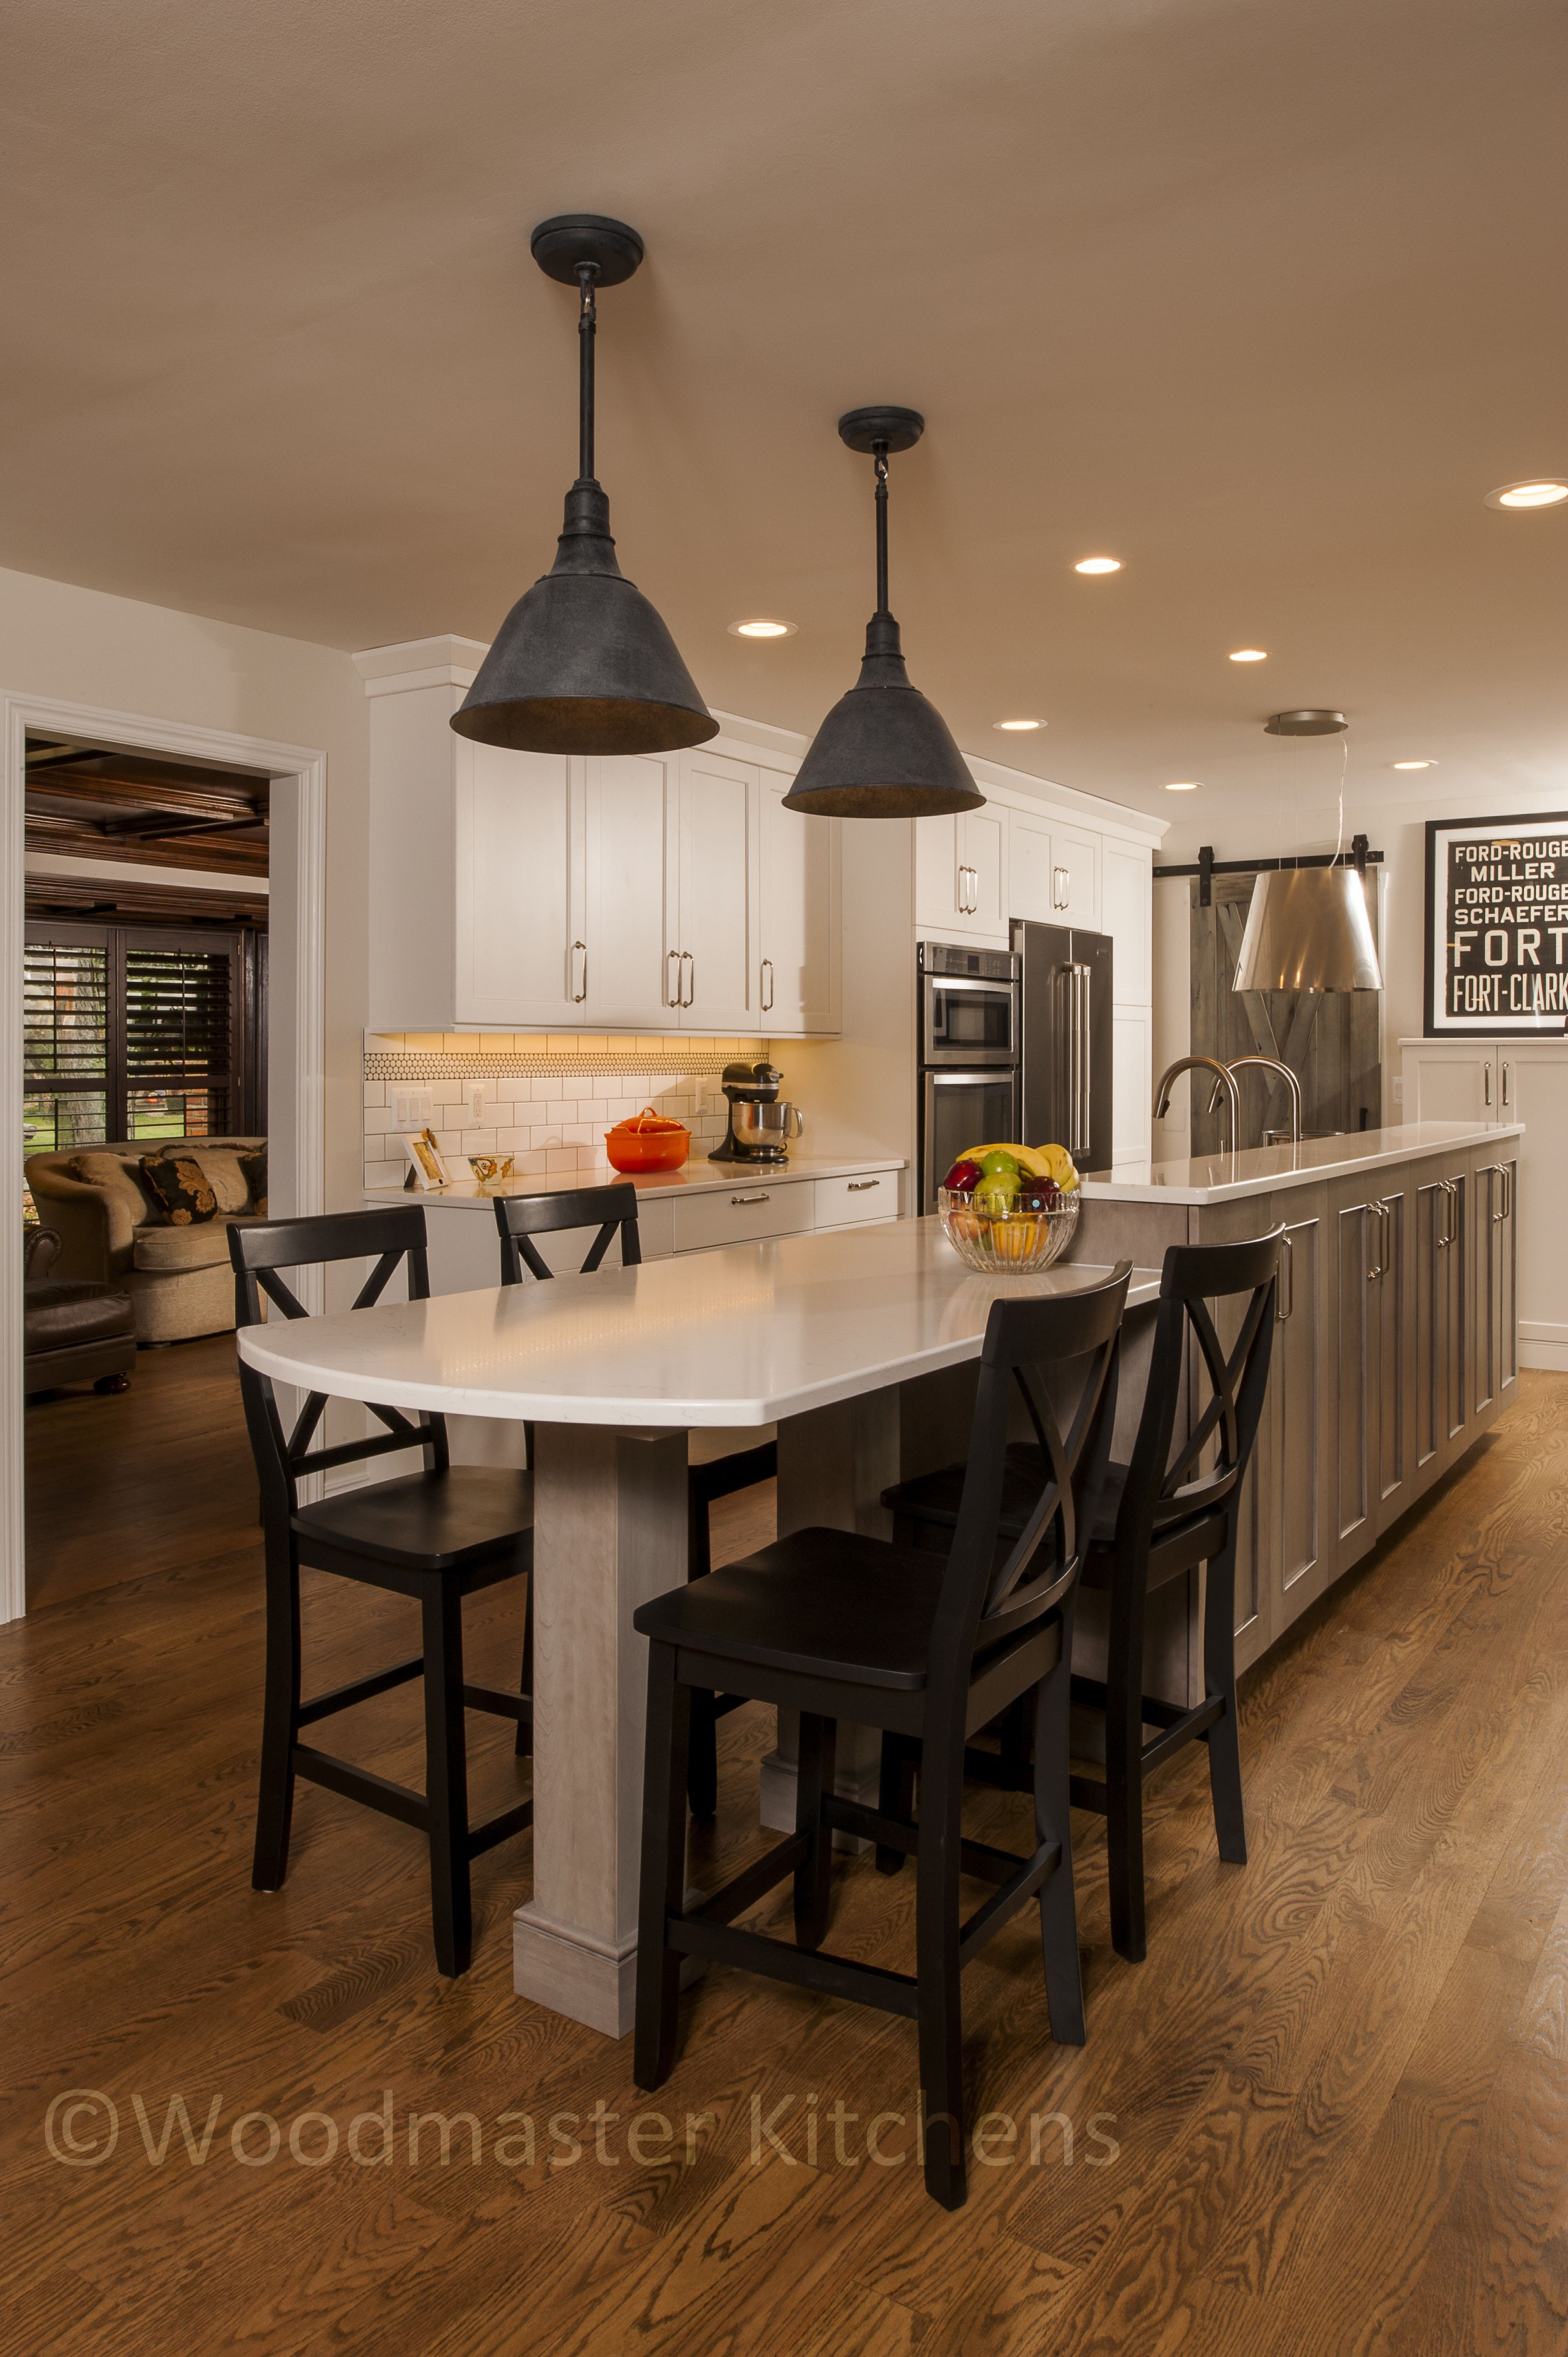 This kitchen renovation in Bloomfield Hills is full of